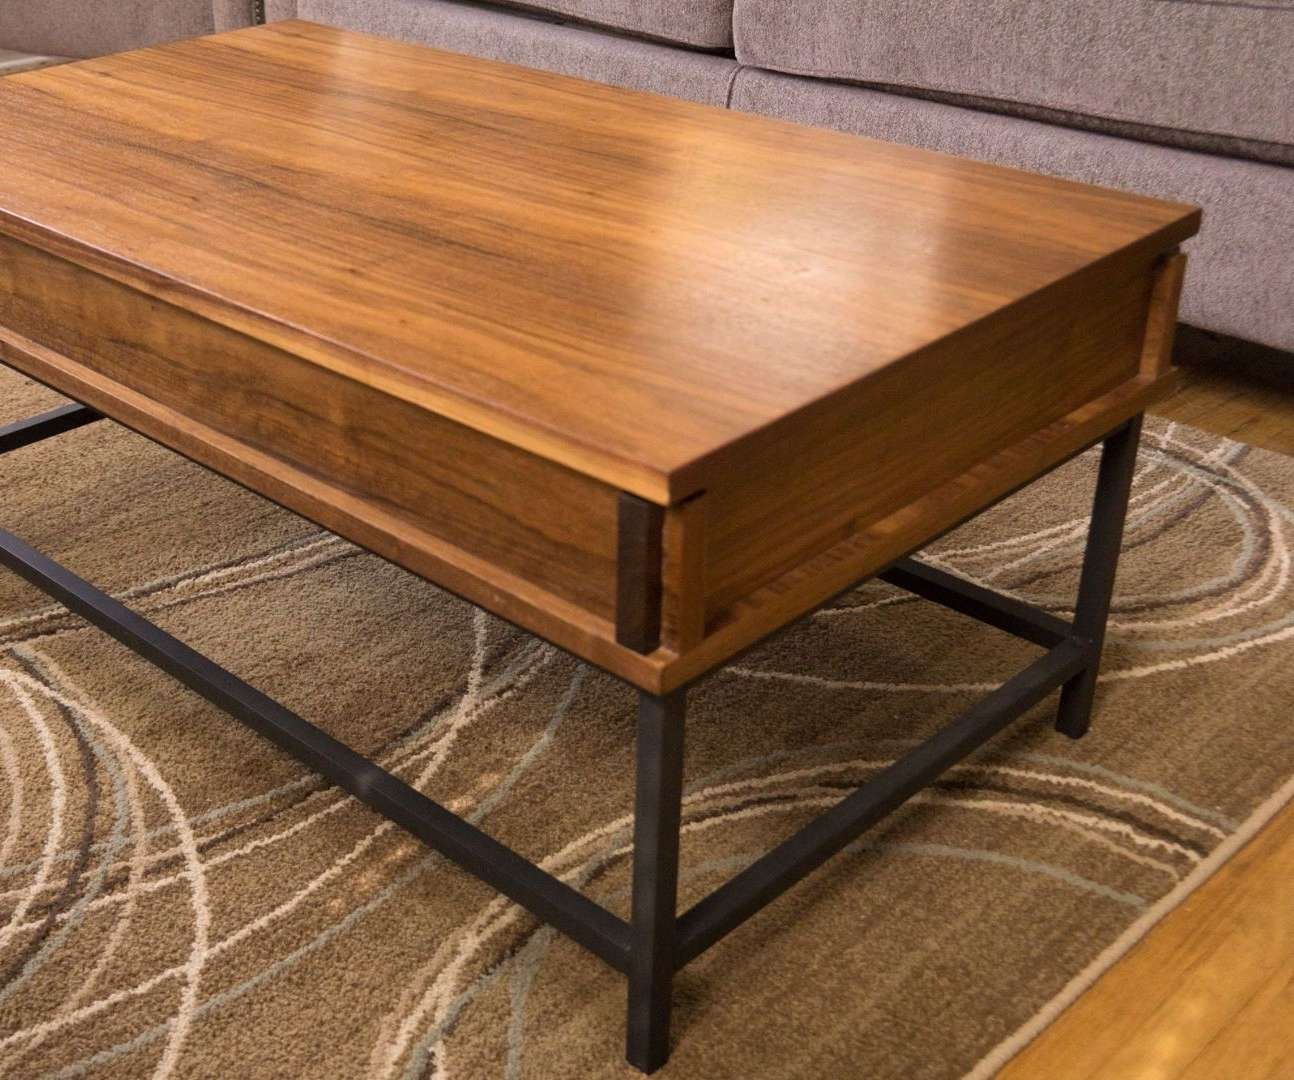 Rising Coffee Table Ideas : Beblincanto Tables – Stylish Ideas For For Most Current Rising Coffee Tables (View 18 of 20)